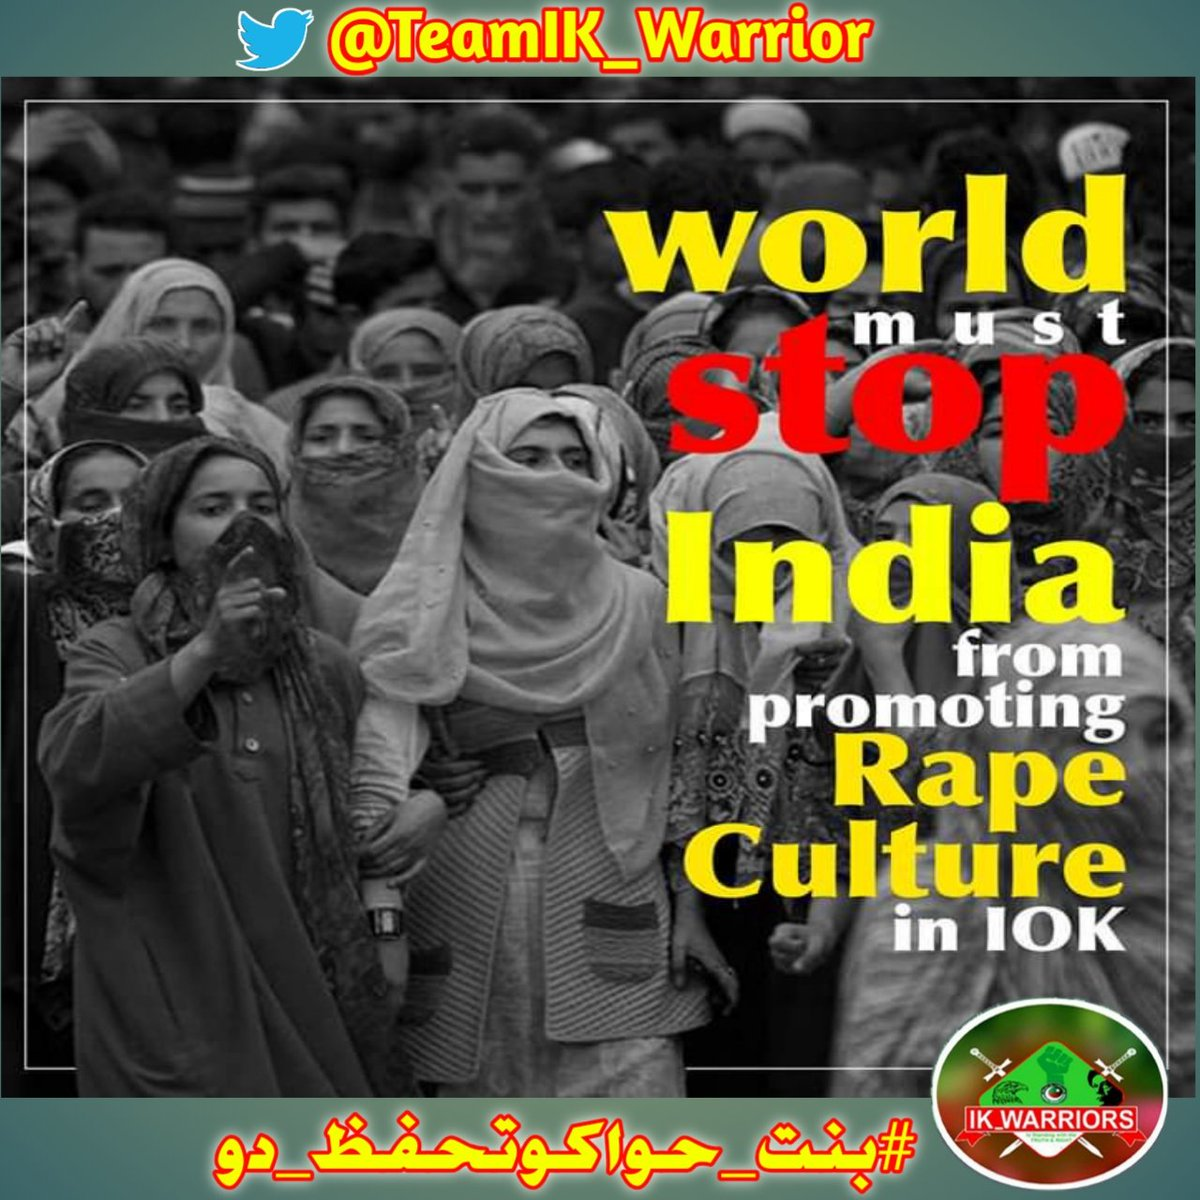 No women tourrist safe in india. No indian women safe even in her own house. No women safe in indian occupied kashmir. No minoreteis safe in india. Shame india shame #بنت_حواکوتحفظ_دو